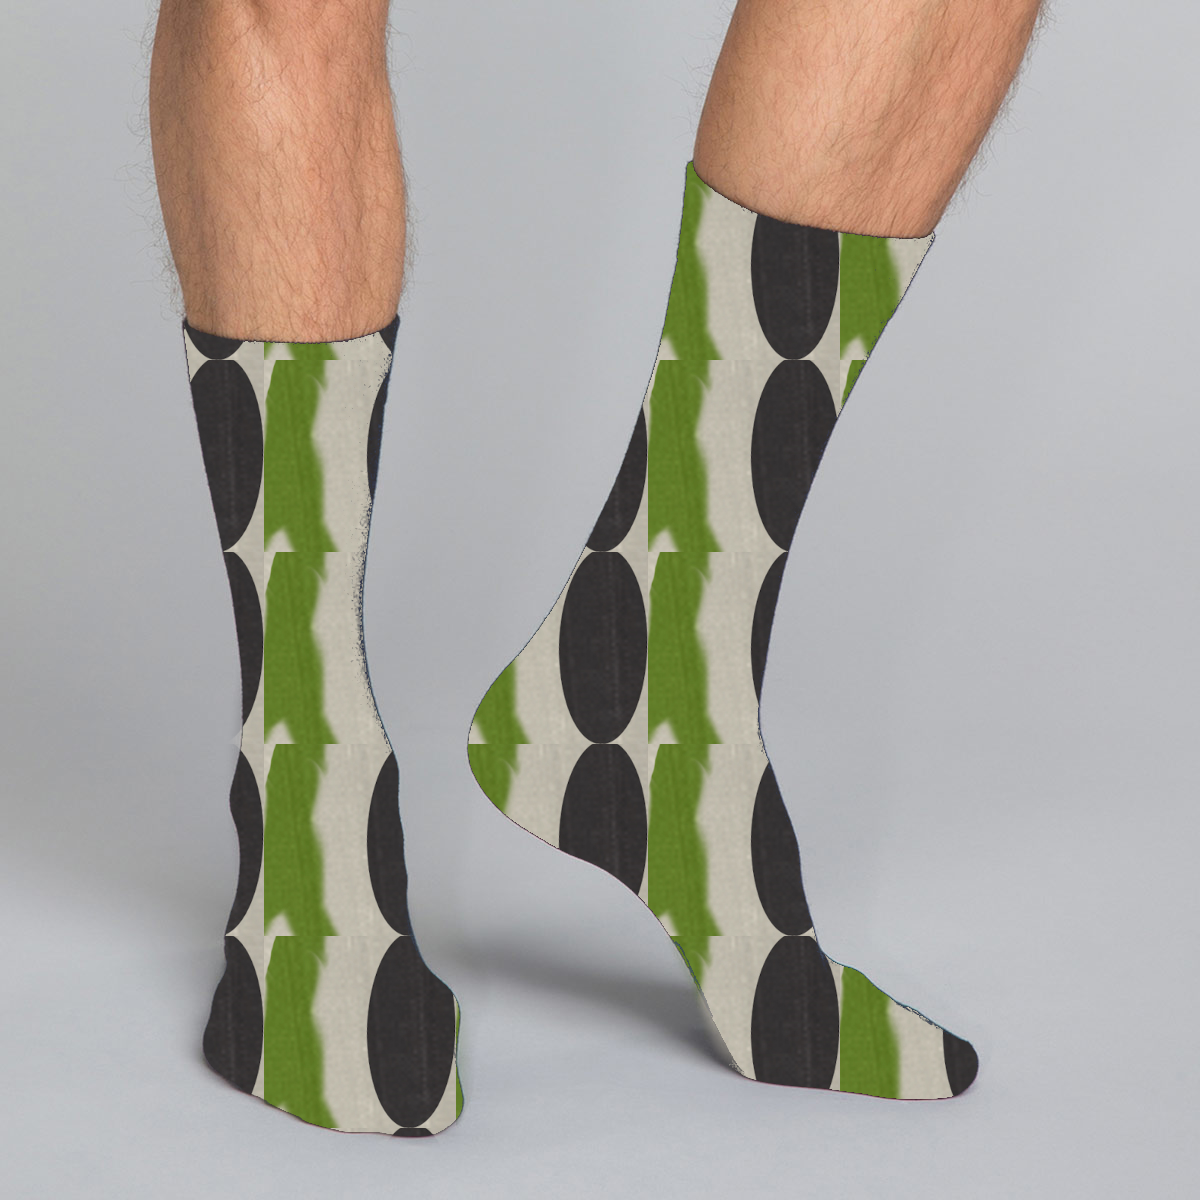 Women's, men's & youth's casual crew socks in unique colorful green, brown and beige design celebrating food, fashion, fitness, fun